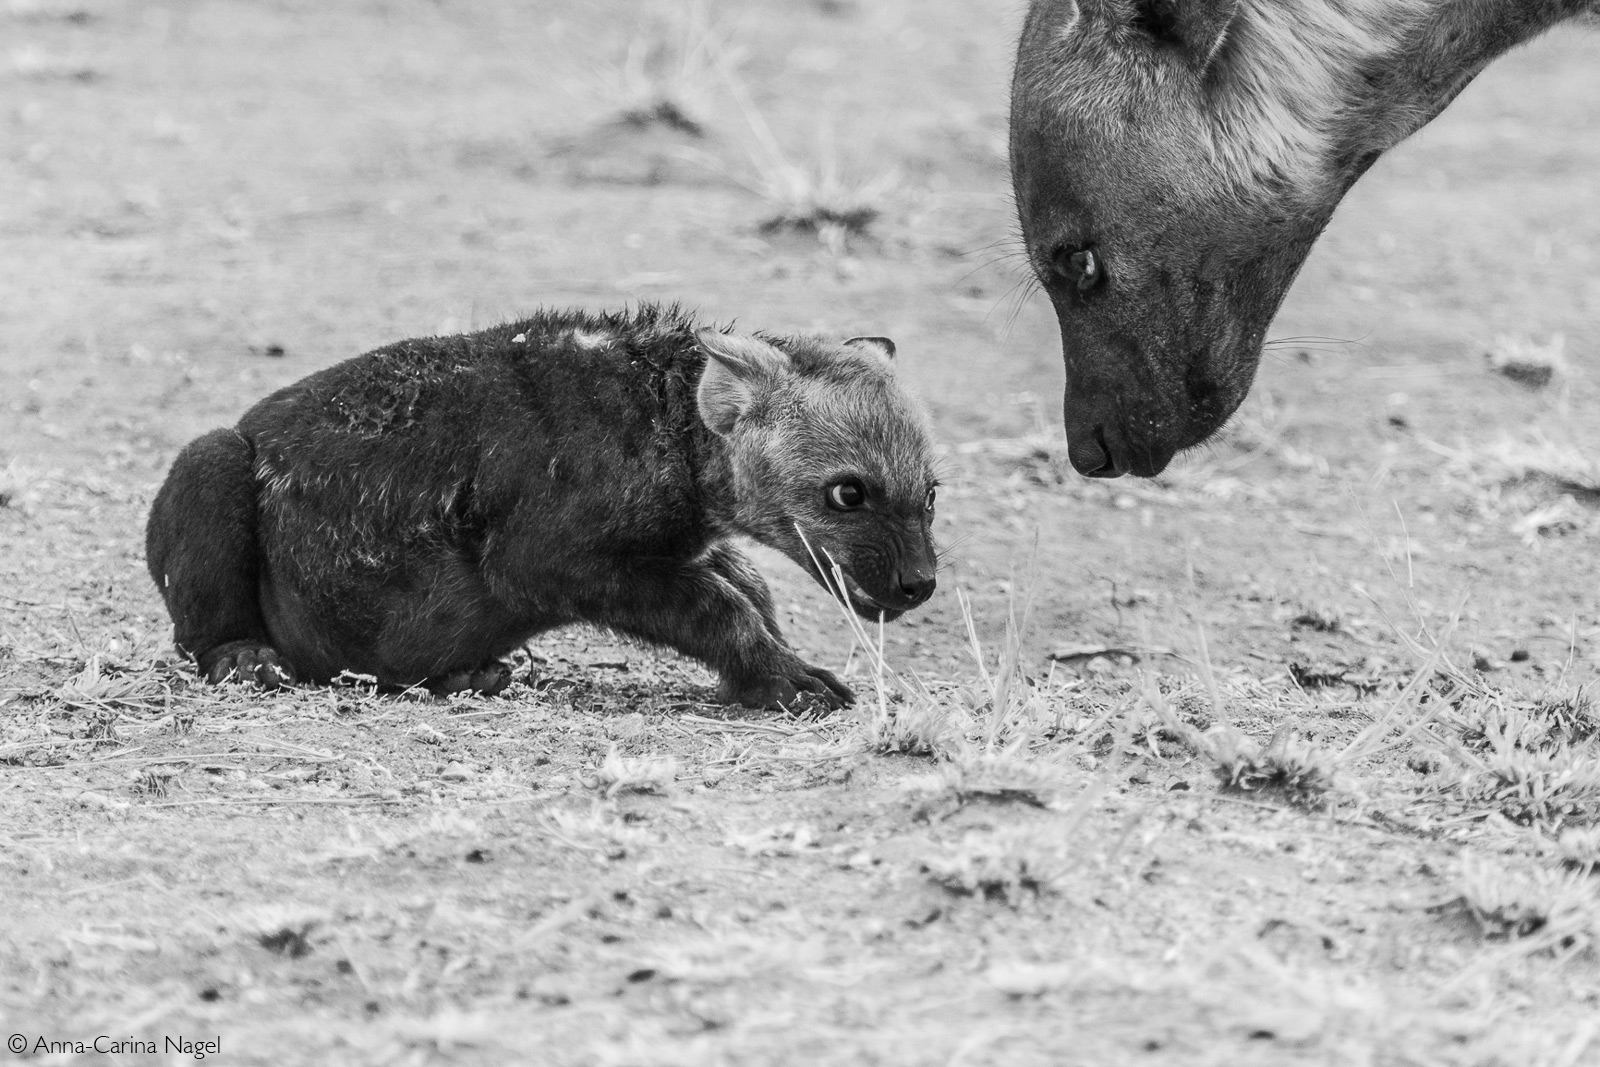 A spotted hyena attempts to get her cub into the den. Kruger National Park, South Africa © Anna-Carina Nagel